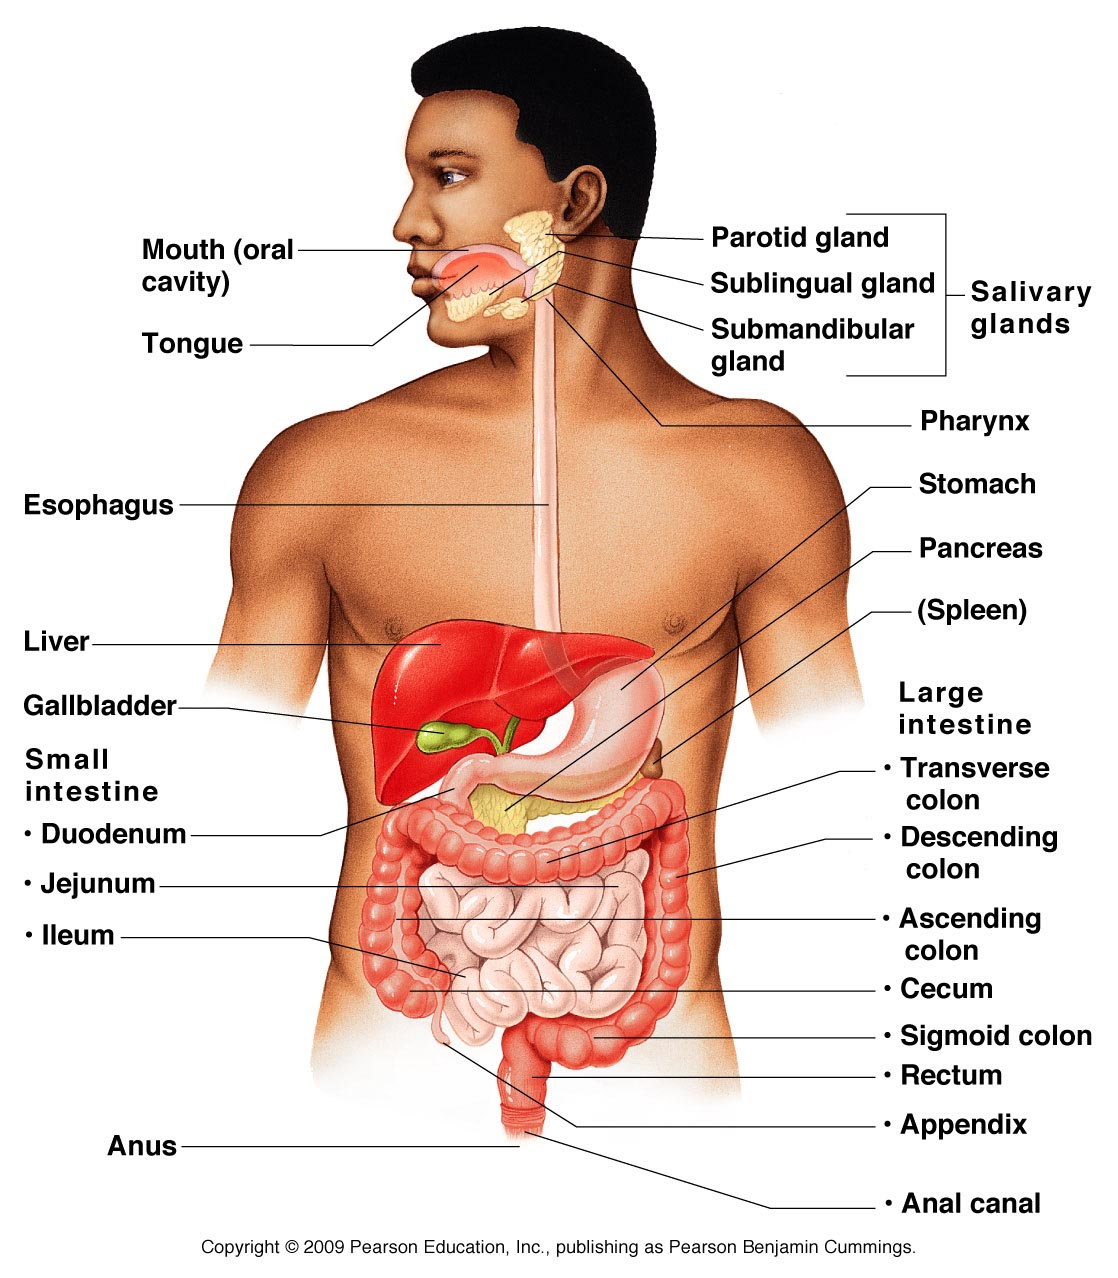 Digestive System Overview : Anatomy & Physiology